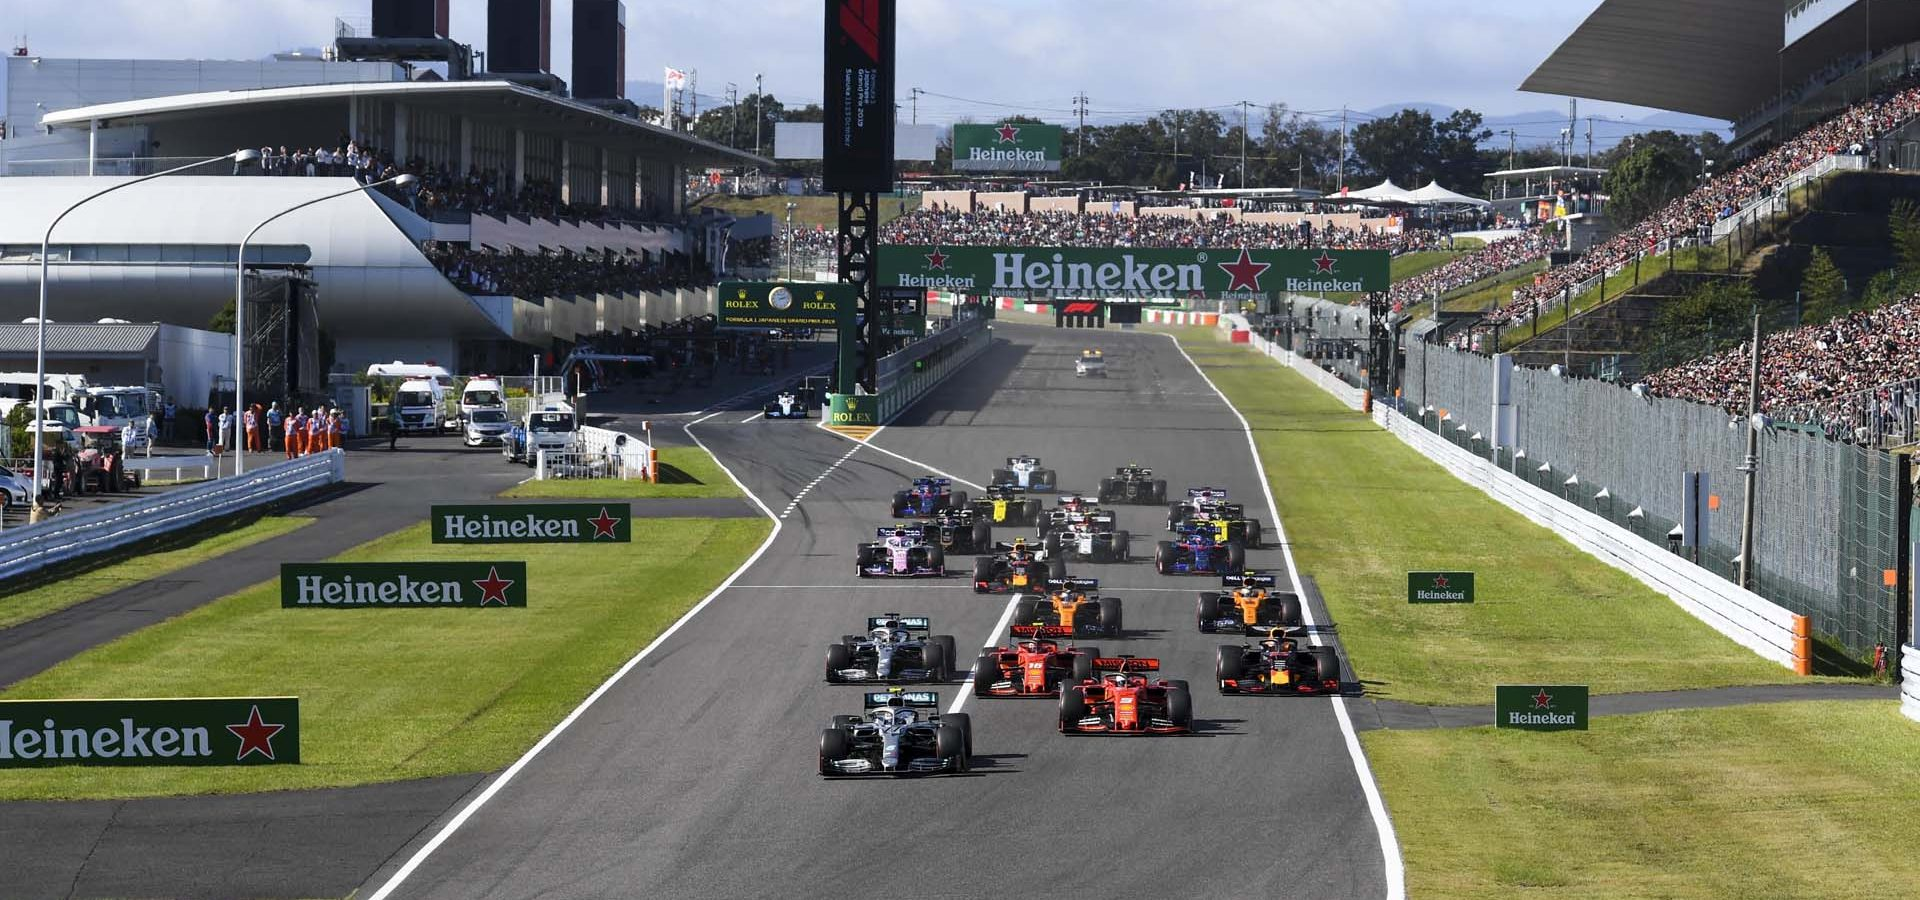 SUZUKA, JAPAN - OCTOBER 13: Valtteri Bottas, Mercedes AMG W10 leads Sebastian Vettel, Ferrari SF90Charles Leclerc, Ferrari SF90, Lewis Hamilton, Mercedes AMG F1 W10 and Max Verstappen, Red Bull Racing RB15 at the start of the race during the Japanese GP at Suzuka on October 13, 2019 in Suzuka, Japan. (Photo by Mark Sutton / LAT Images)